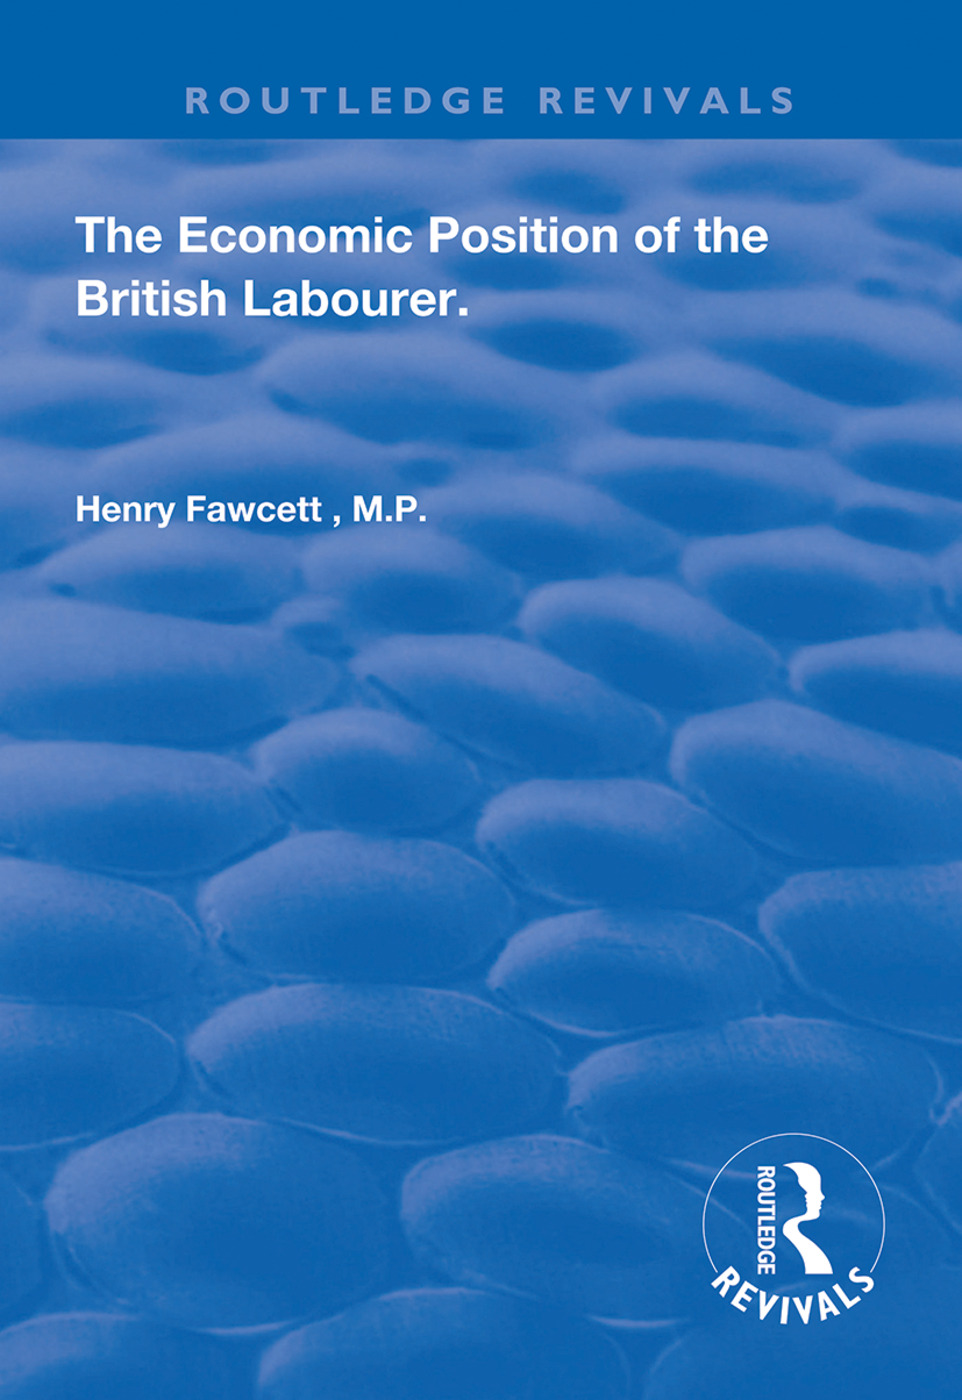 The Economic Position of the British Labourer book cover